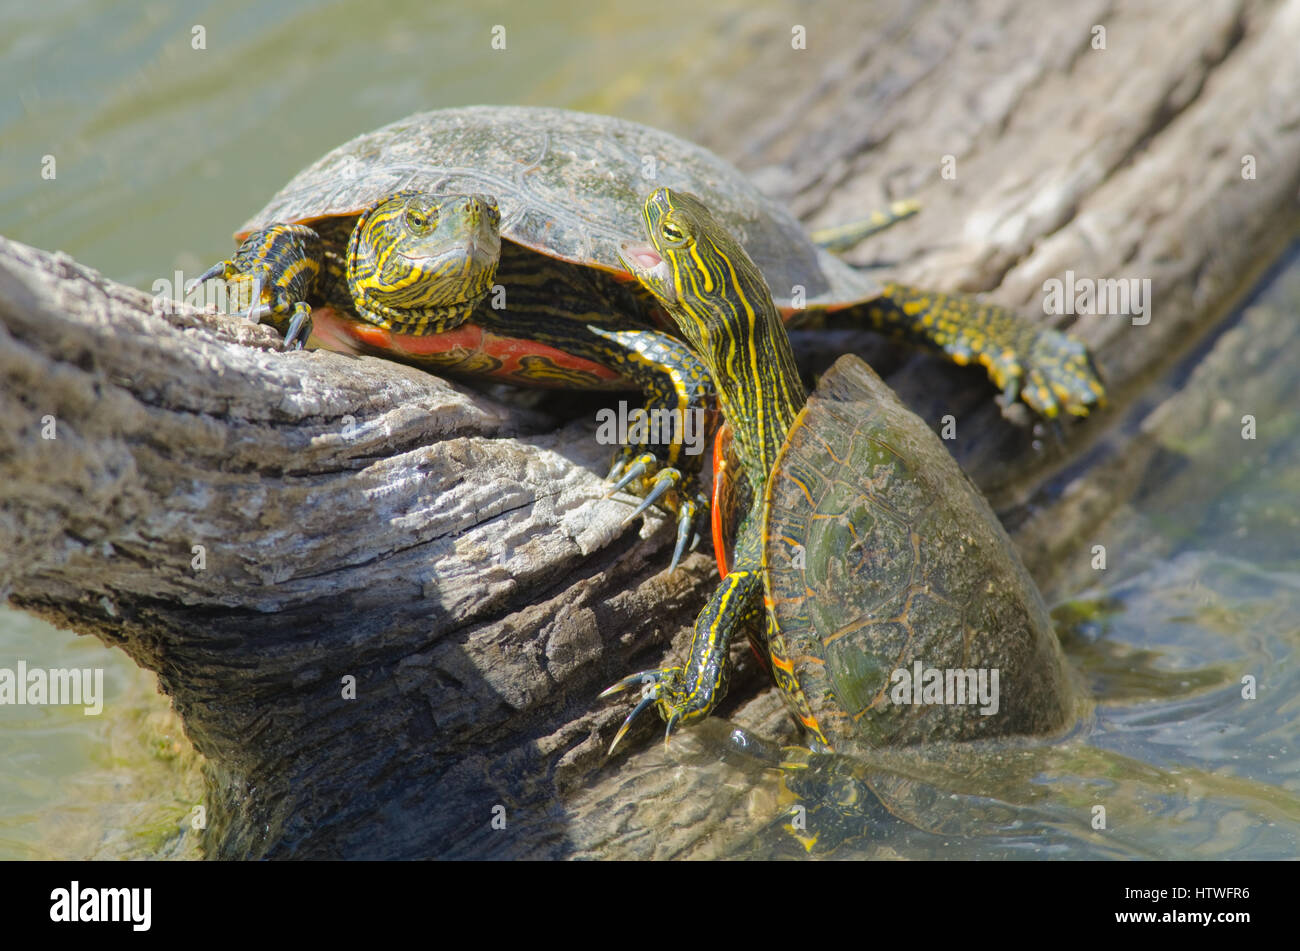 Western Painted Turtles competing for a basking site. - Stock Image